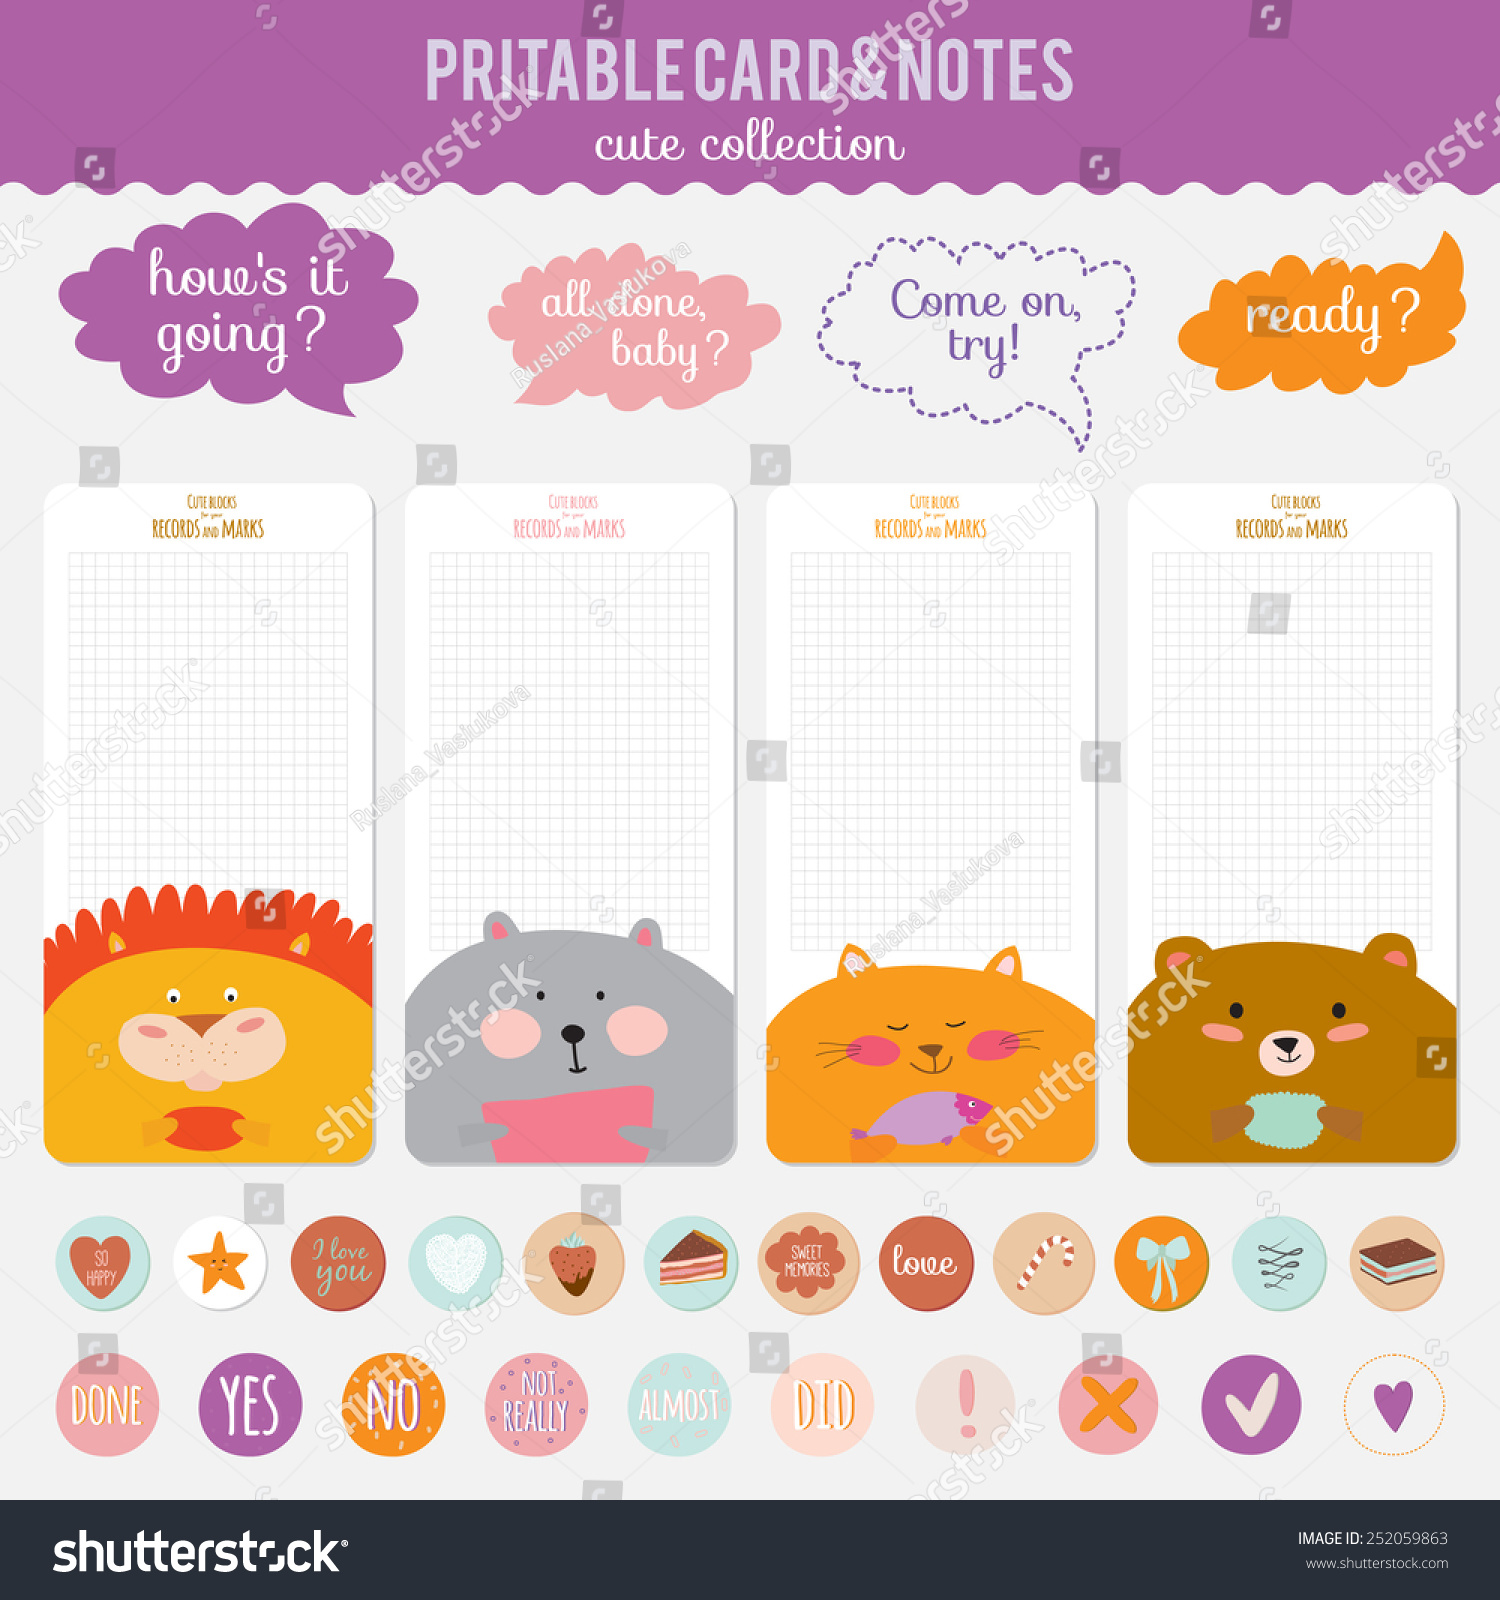 romantic love cards notes stickers labels stock vector (royalty free